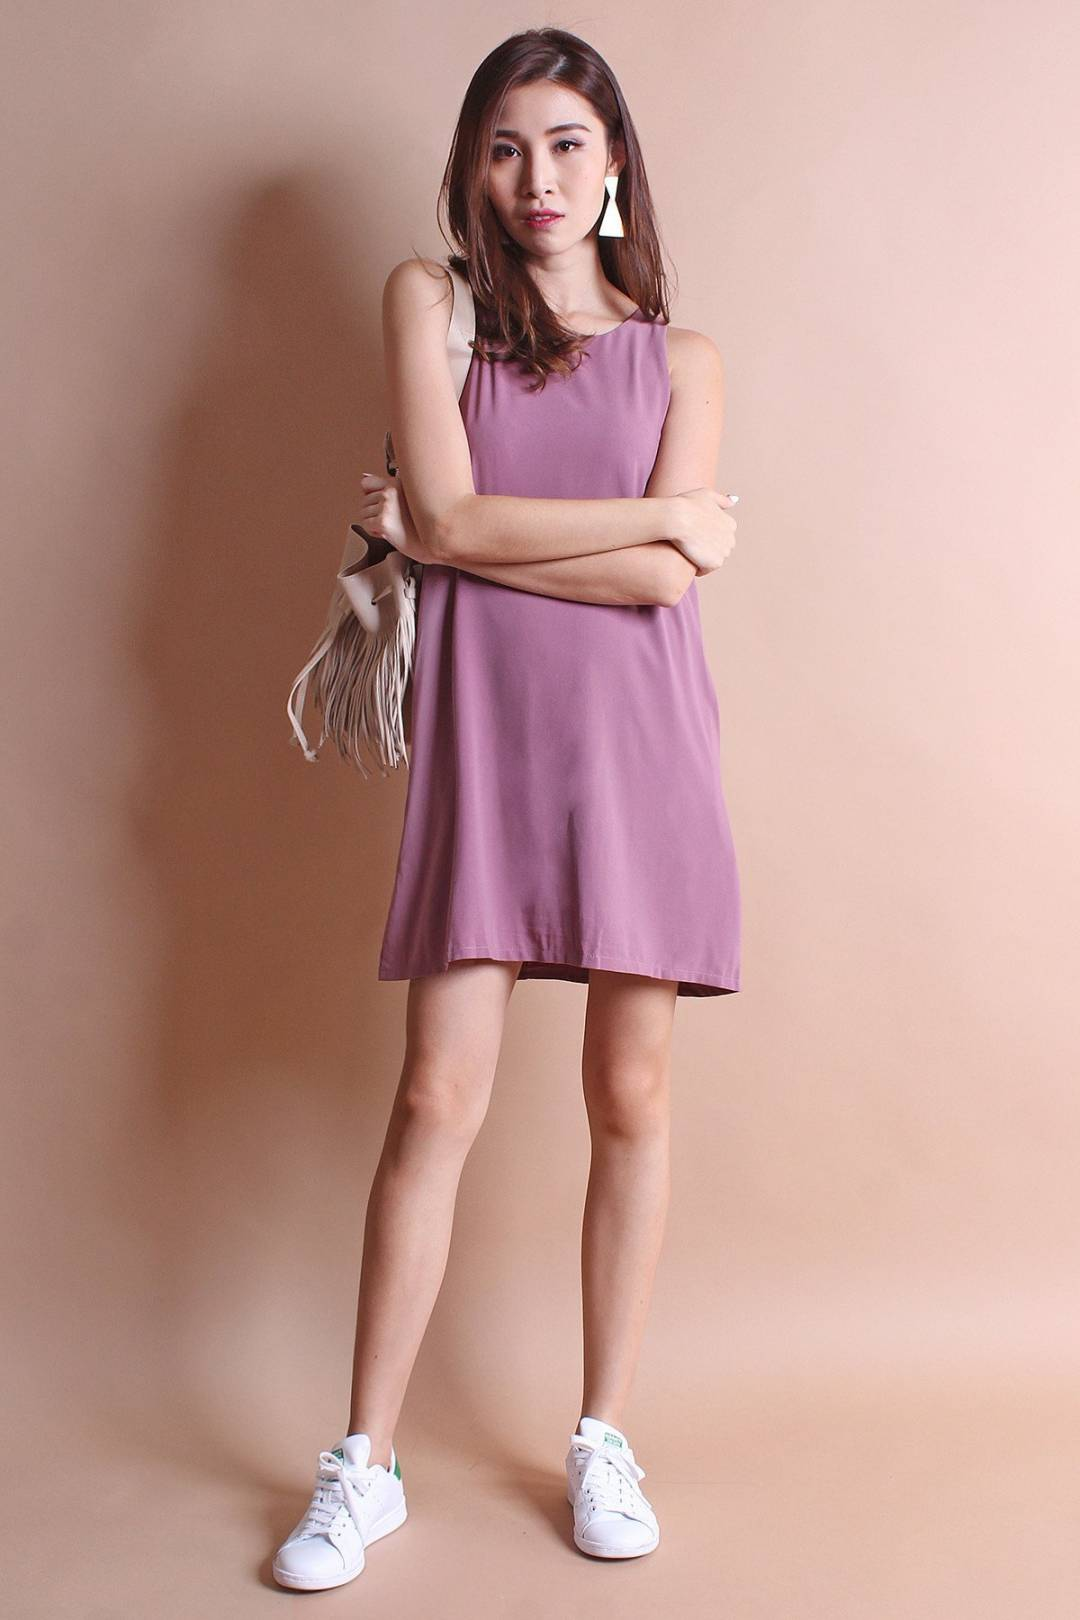 RESTOCKED** NM BASICS BERNETTE POCKETFUL TRAPEZE IN ROSE MAUVE [XS/S/M/L]